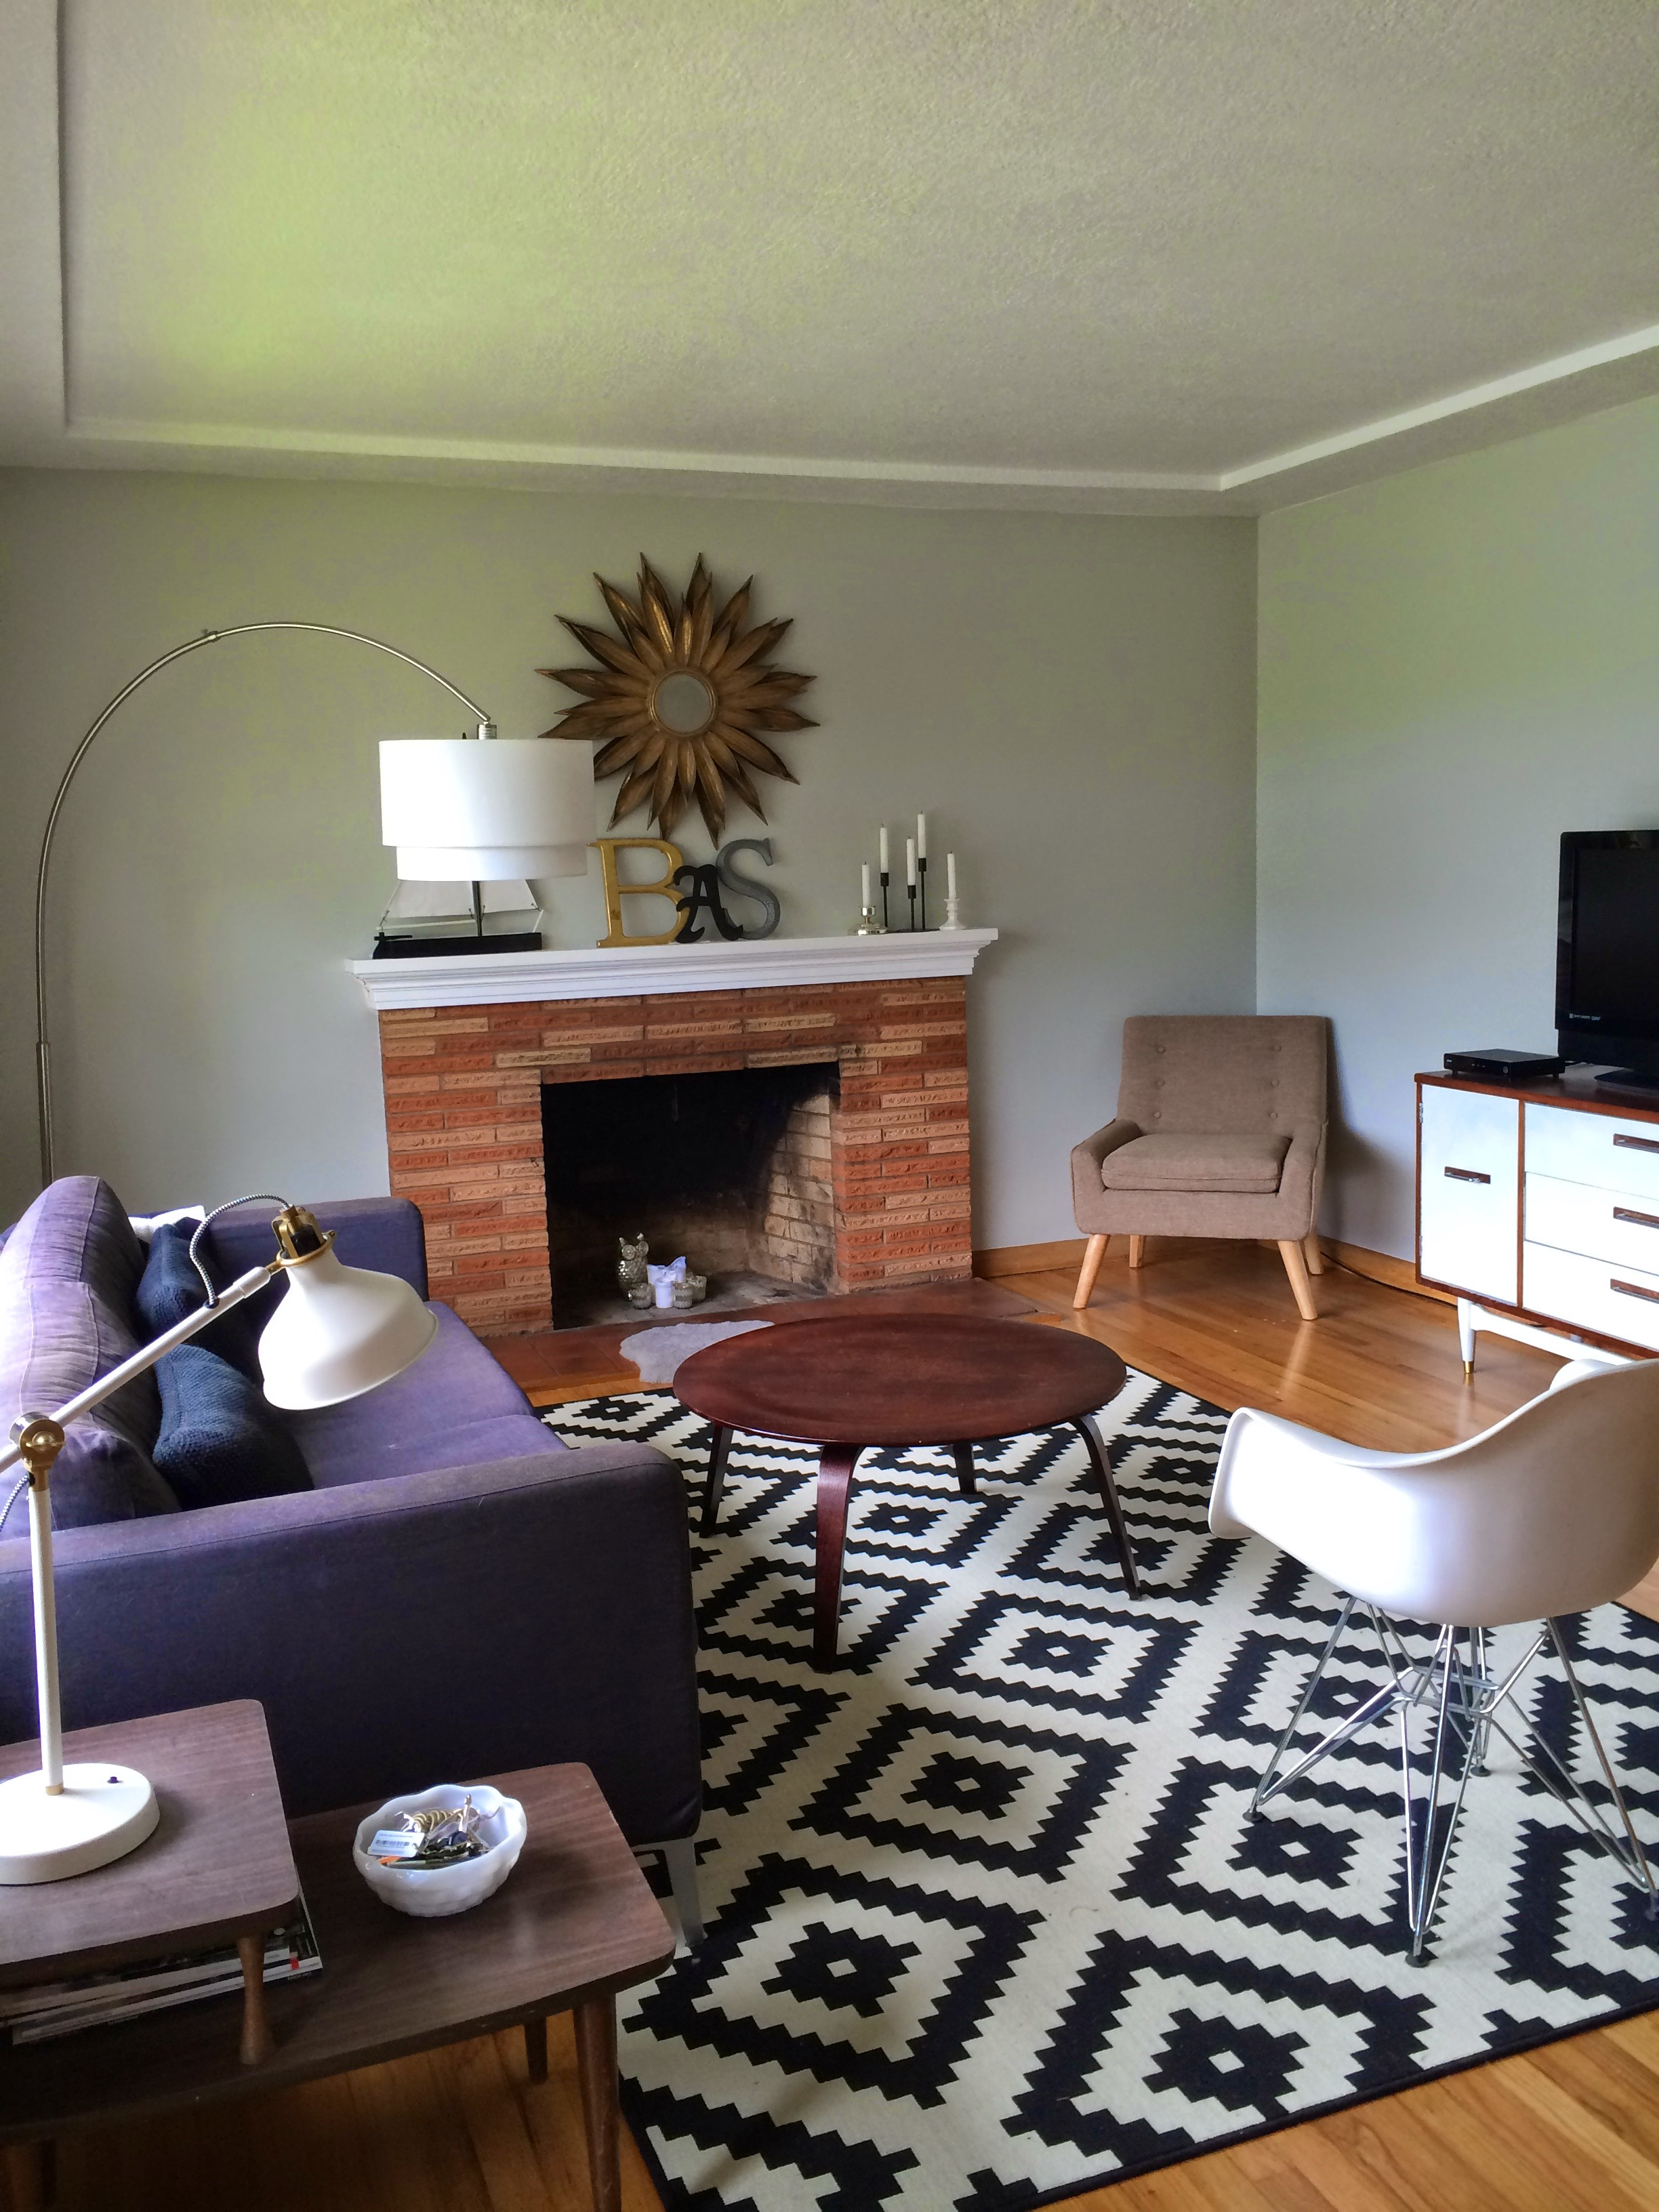 Sneak Peek Of Our Mid Century Style Ranch Living Room